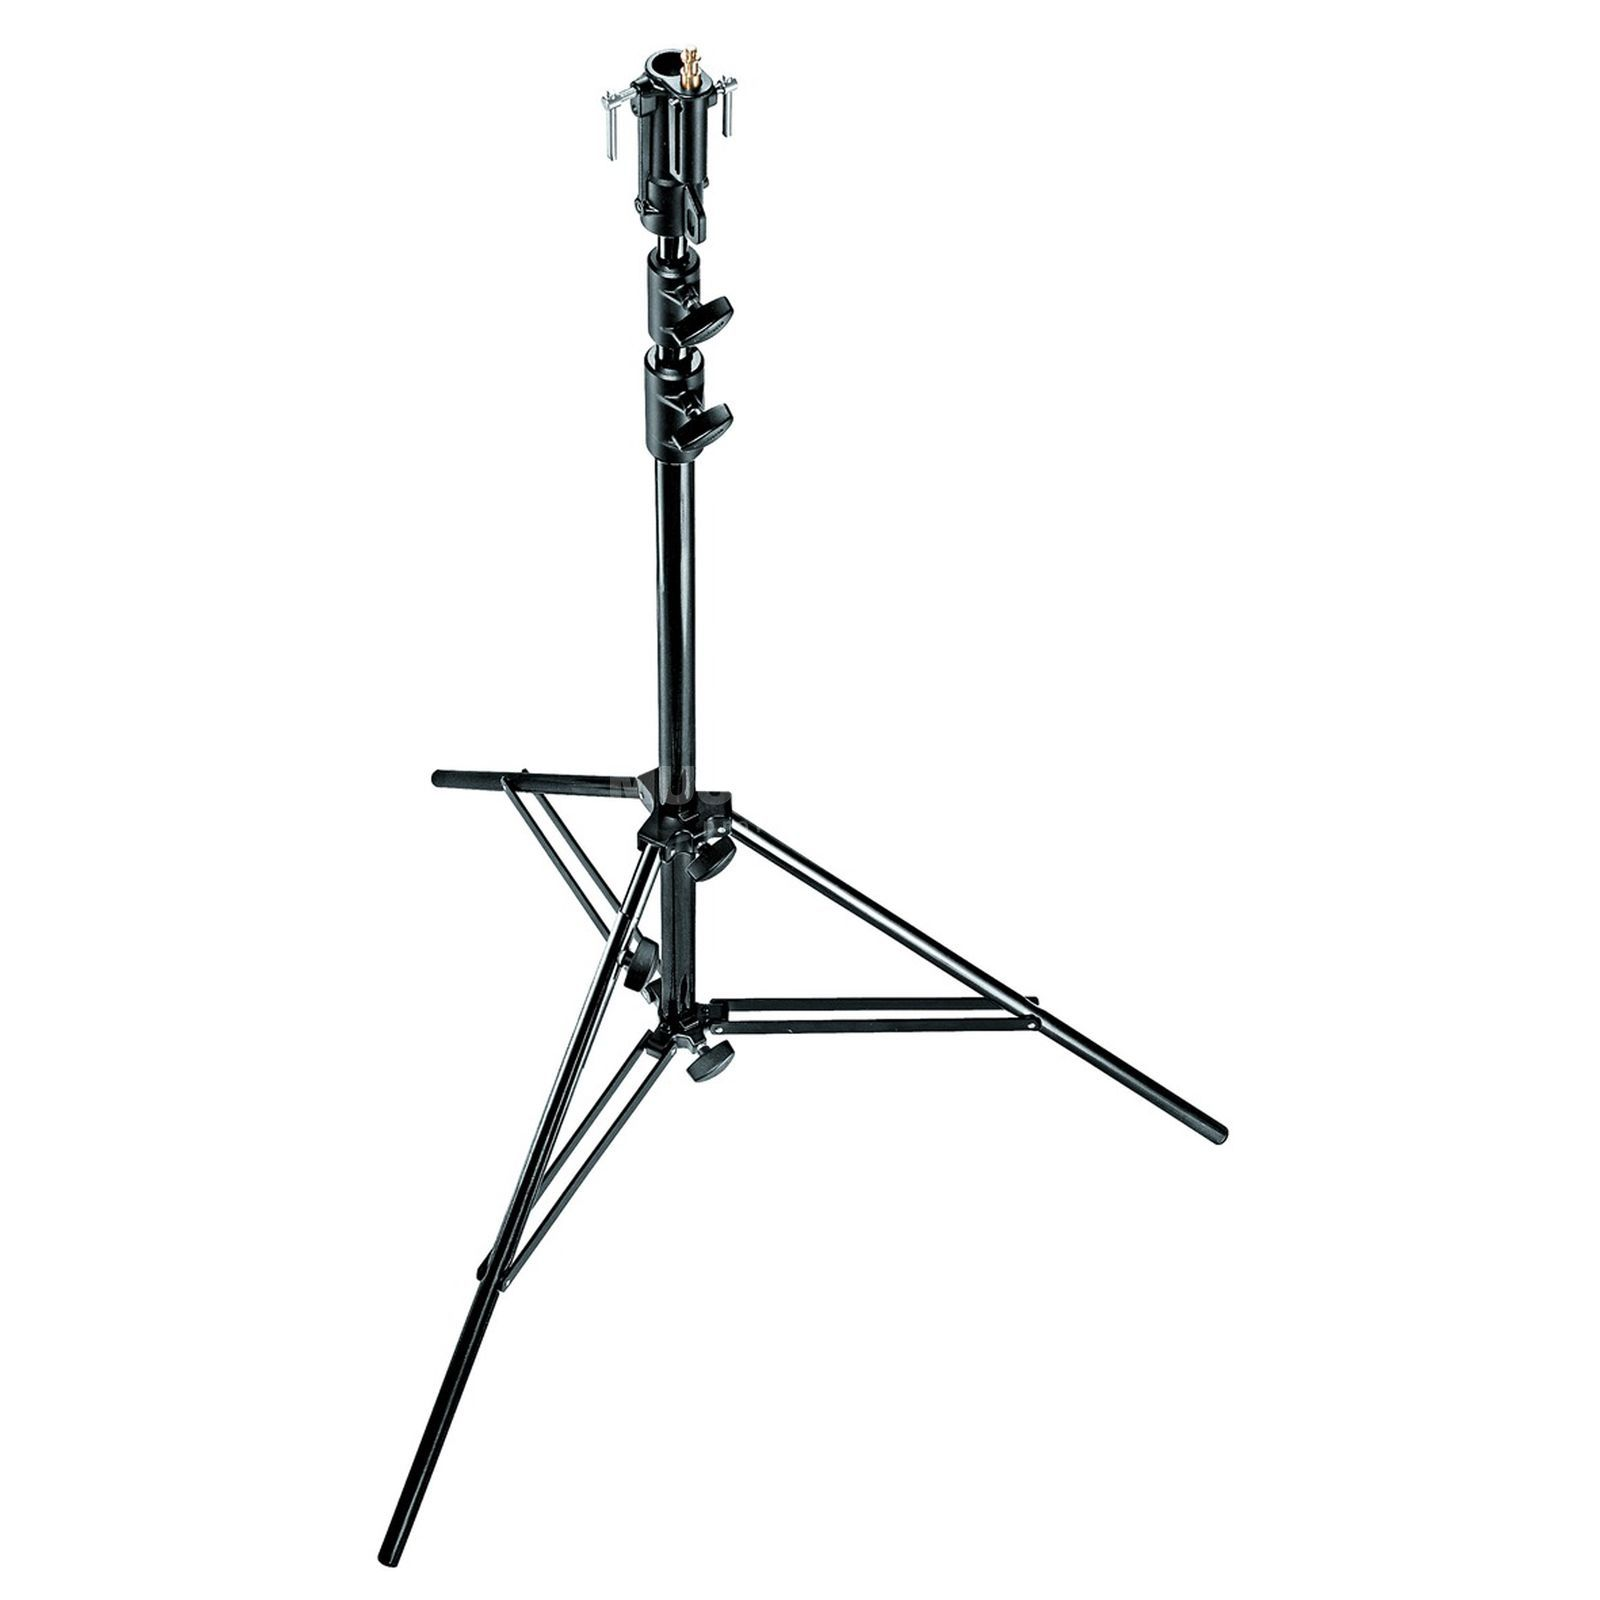 Manfrotto 007BSU Senior Stand, 20 kg 325 cm, 3 Sections, 2 Telescopic Produktbillede